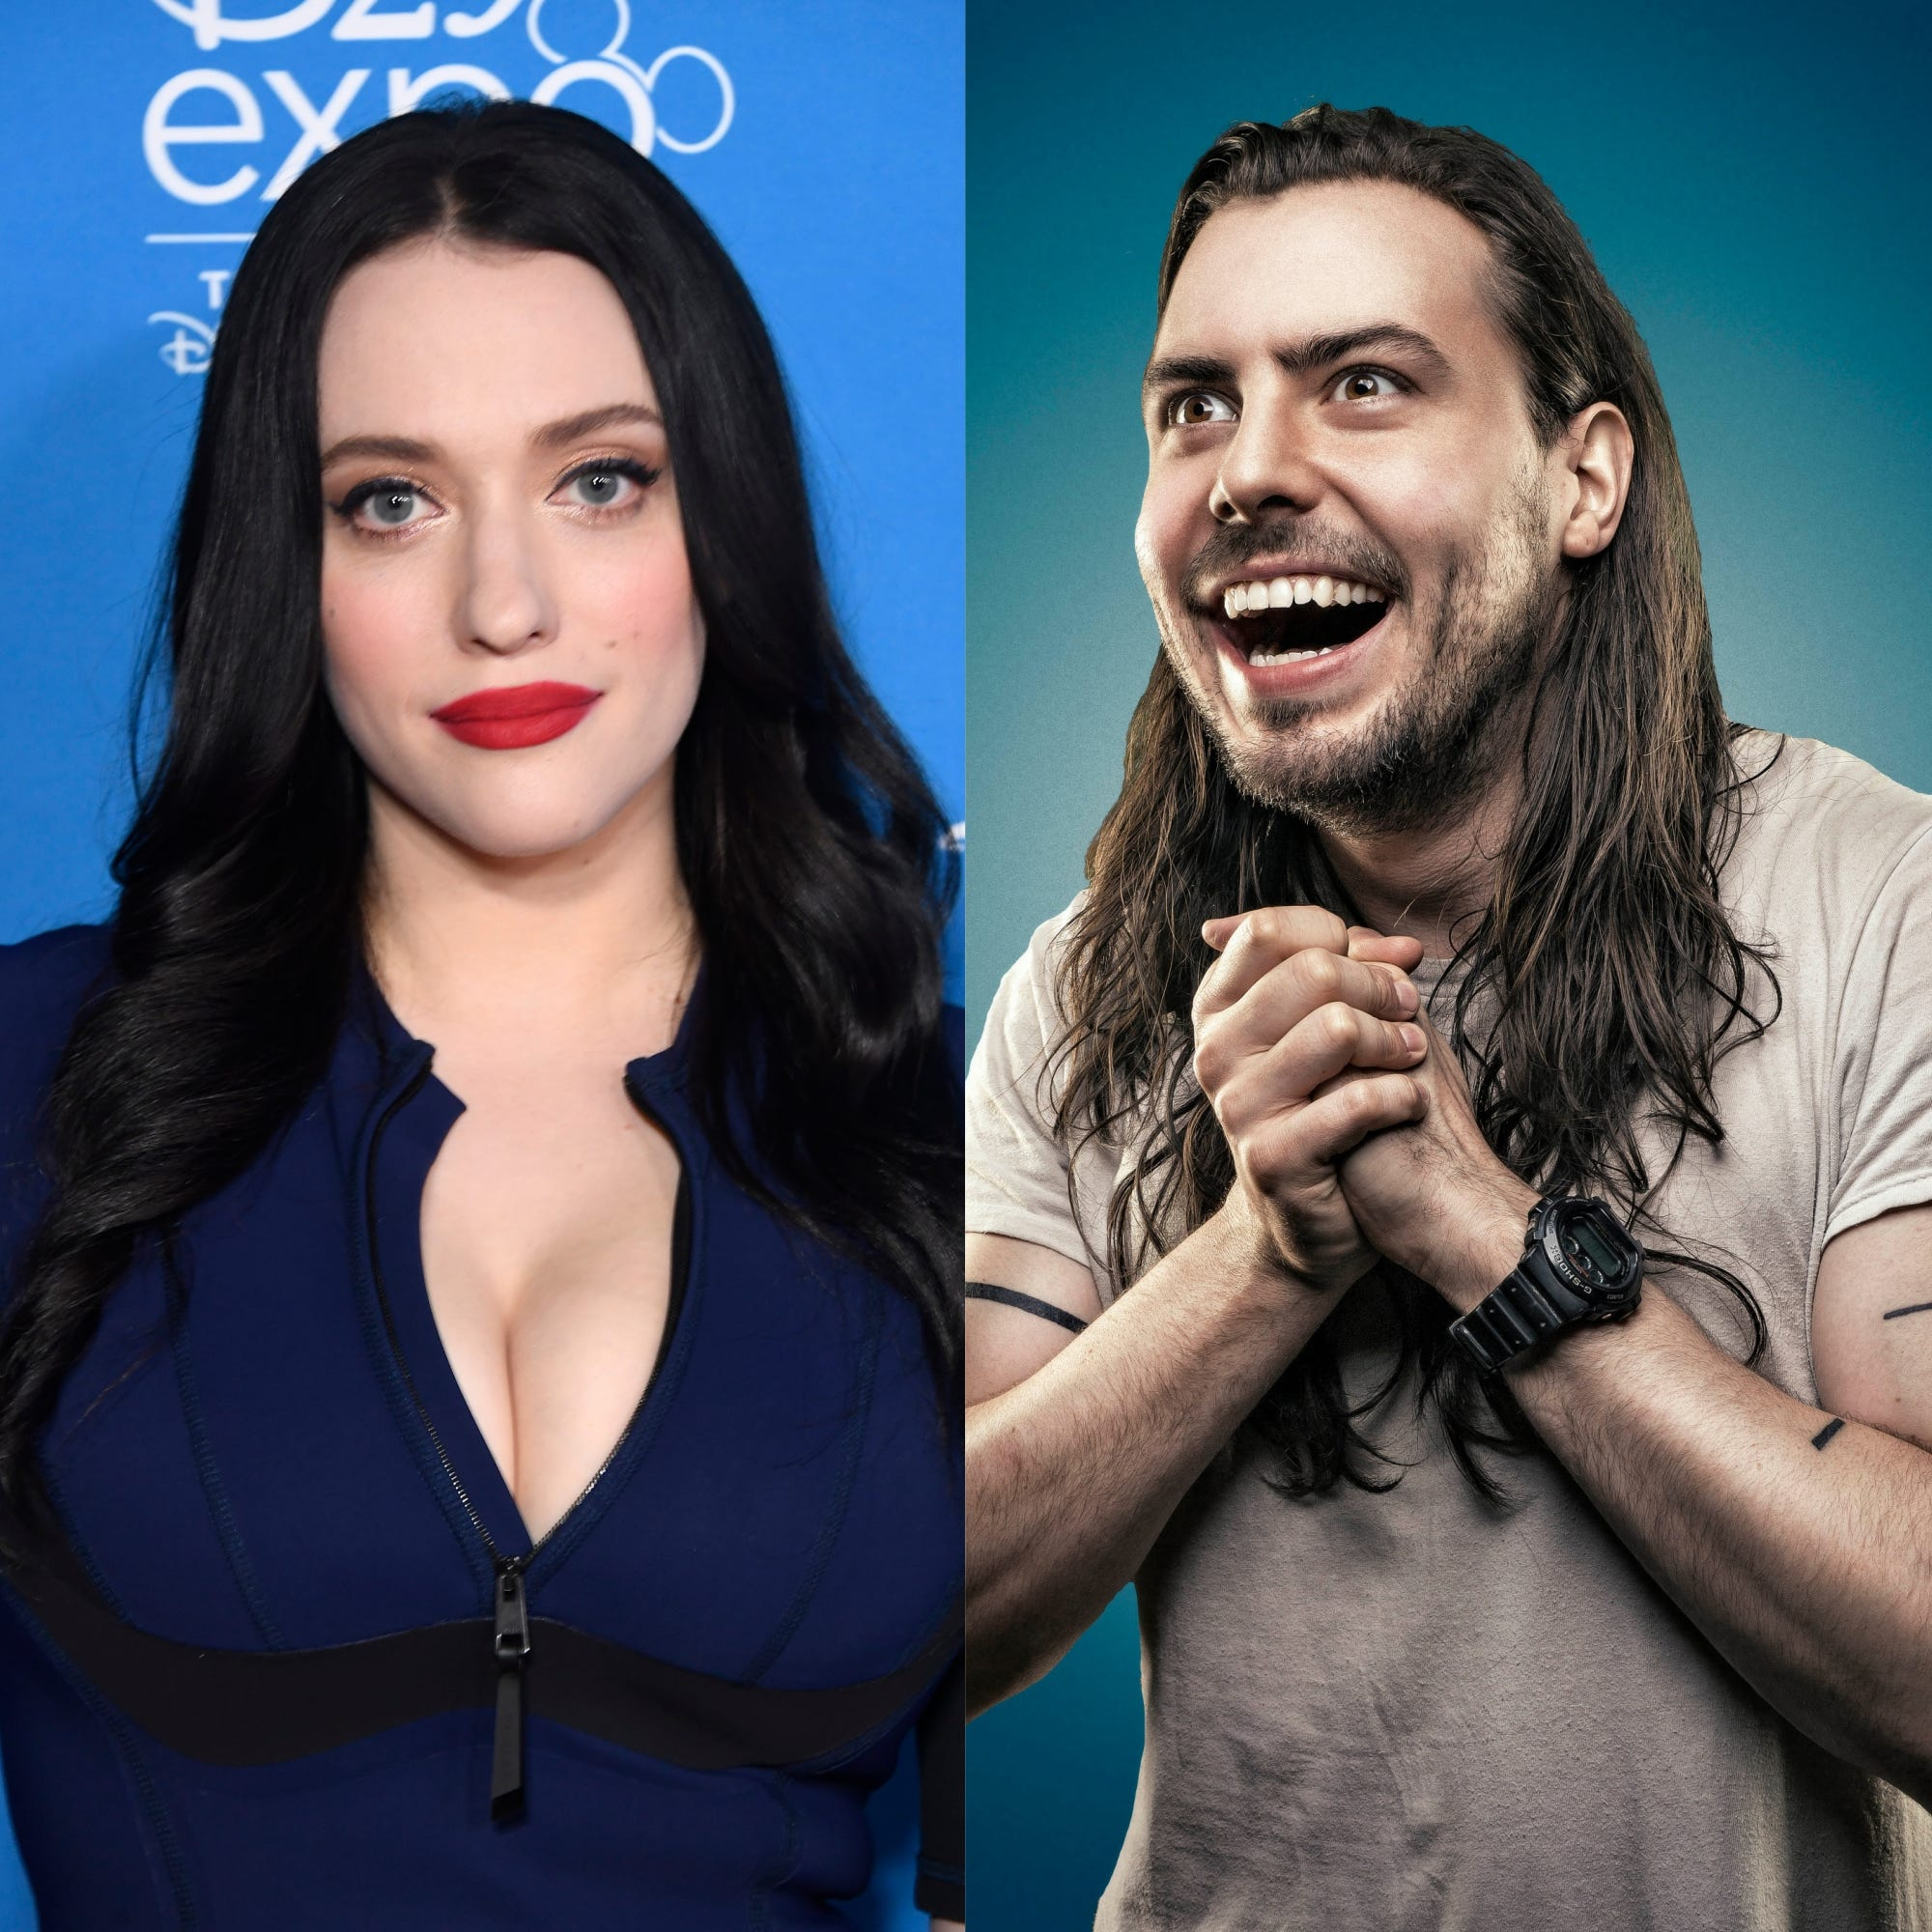 Don t mind if I do : Kat Dennings engaged to musician Andrew W.K. after whirlwind romance